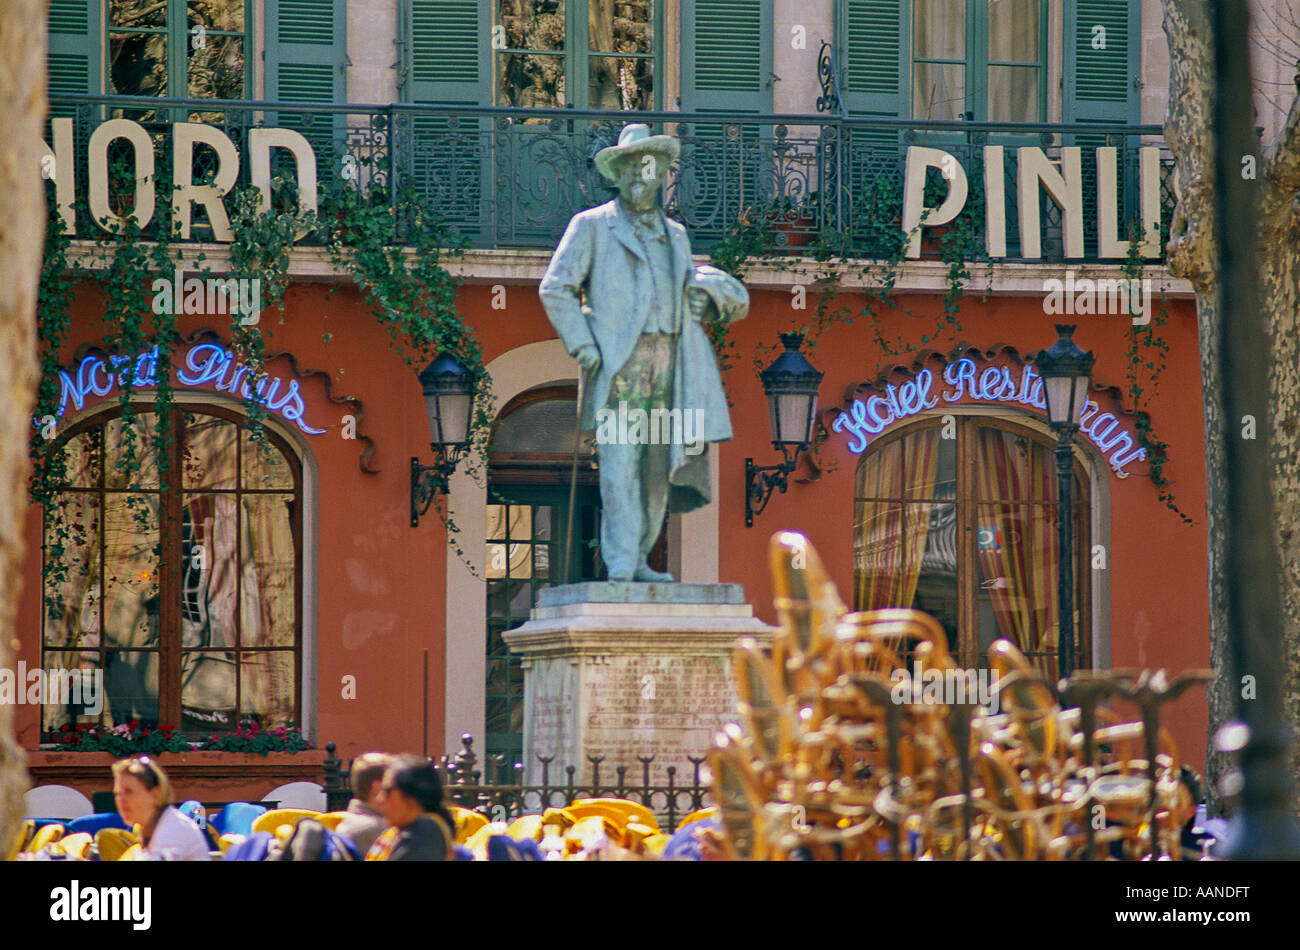 Statue of Mistral and cafe outside the Hotel Nord Pinus, Arles, Bouches du Rhone, Provence, France - Stock Image